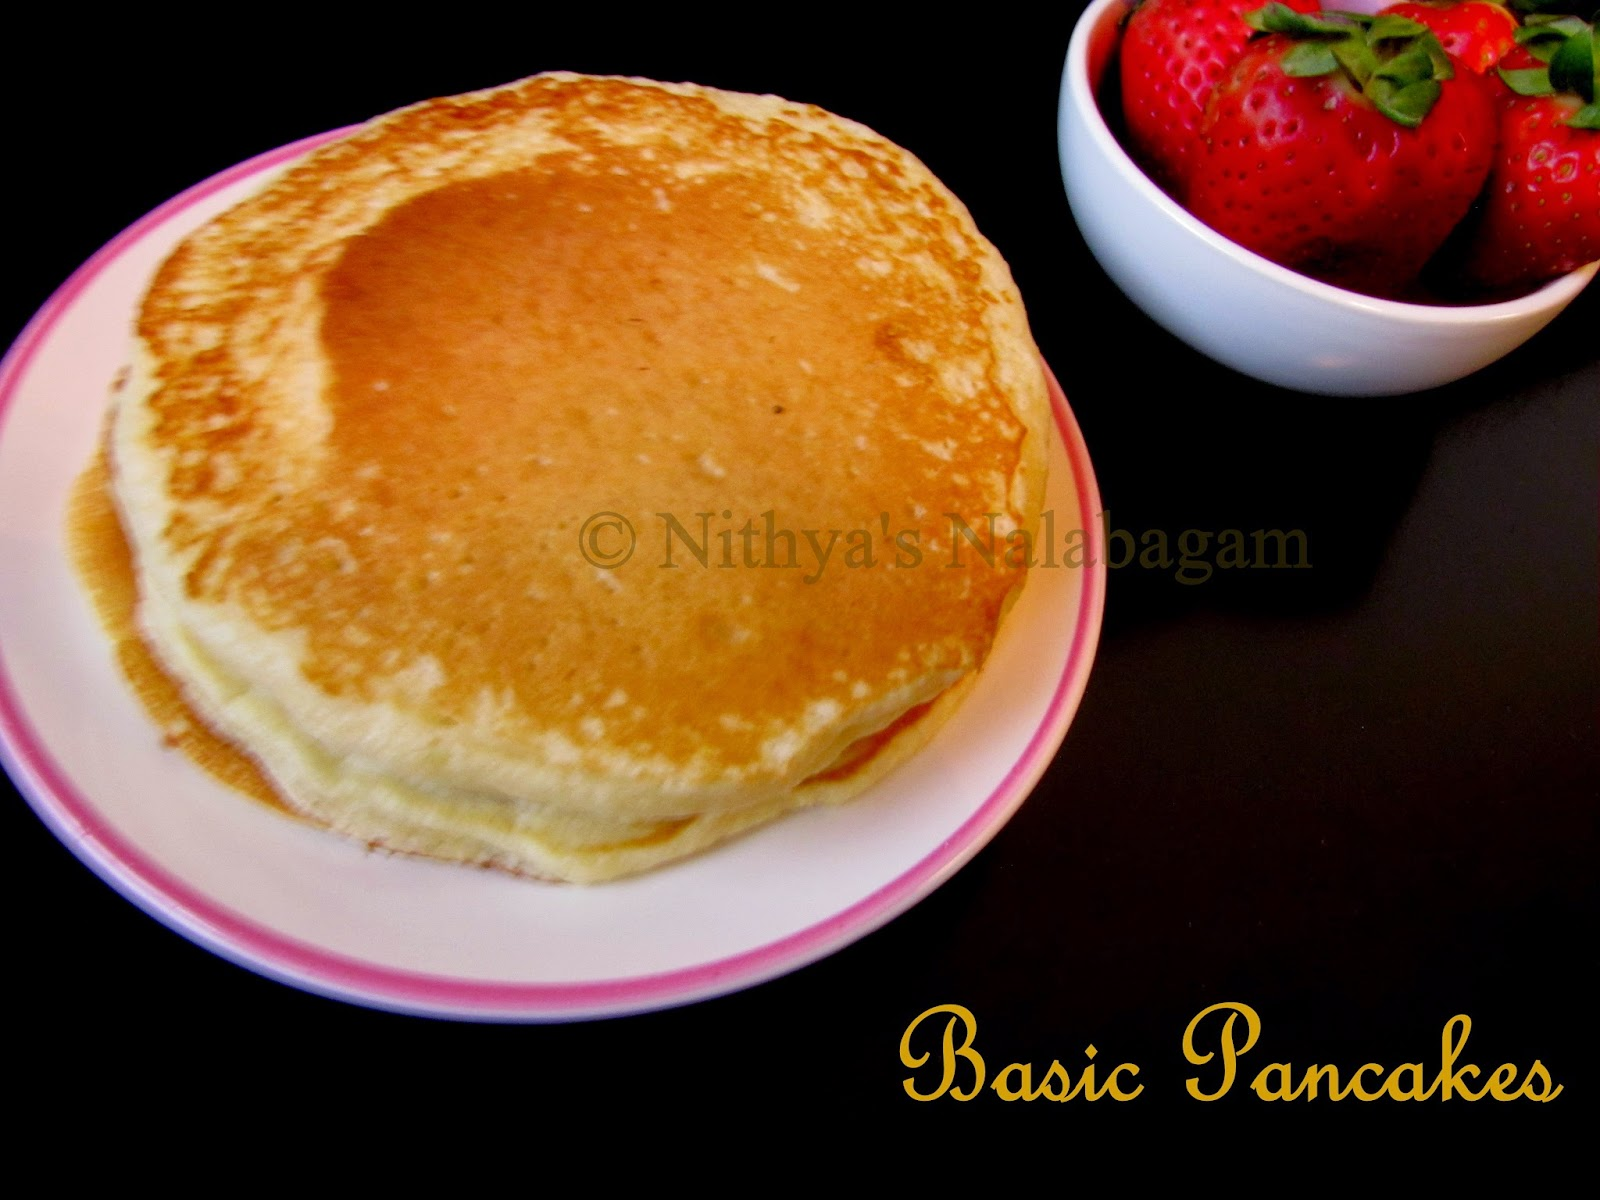 Basic Pancakes from scratch